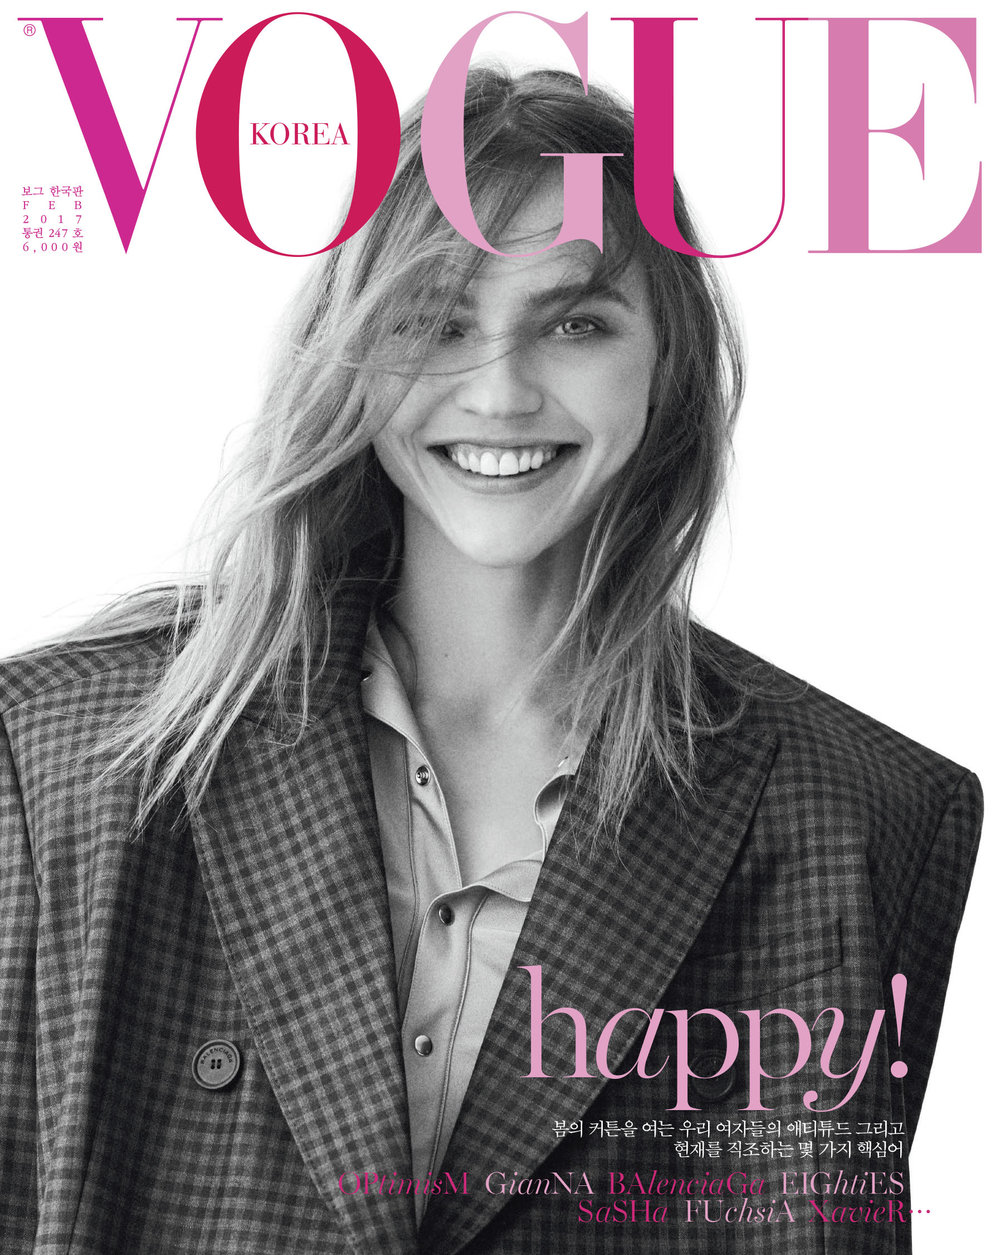 VOGUE_KOREA_FEB_2017_COVER.jpg